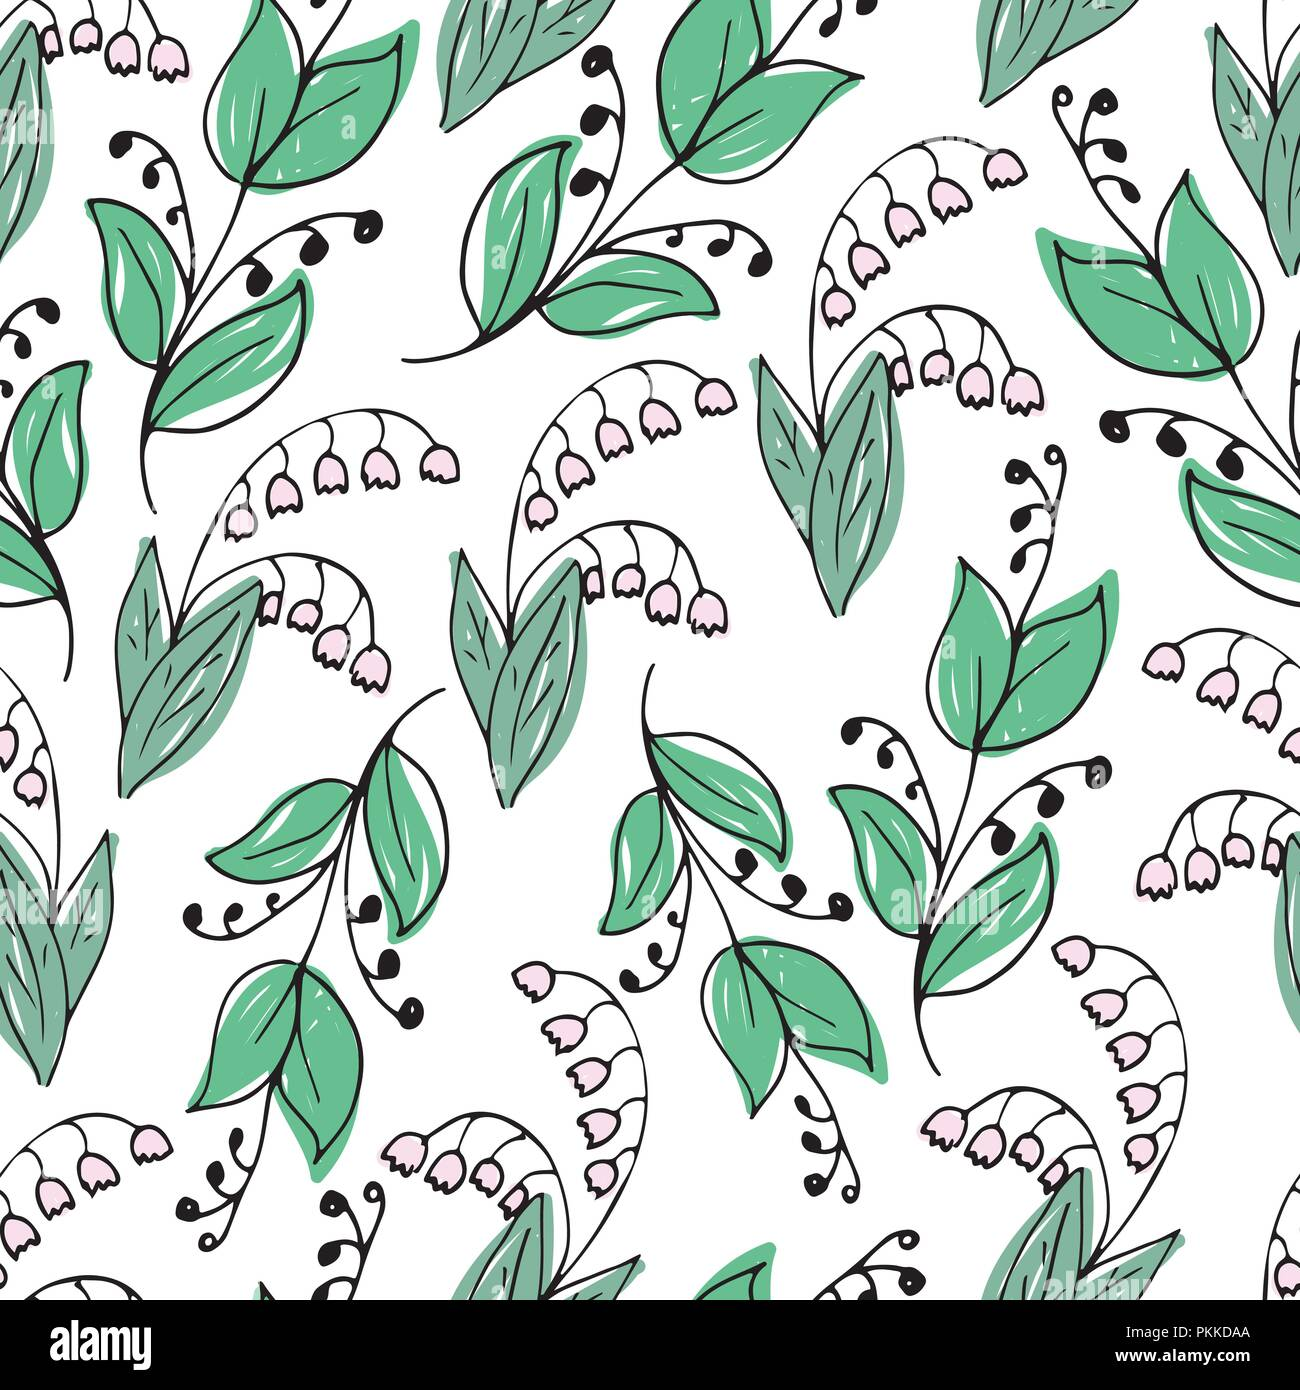 Lily Of The Valley Drawing Imágenes De Stock & Lily Of The Valley ...